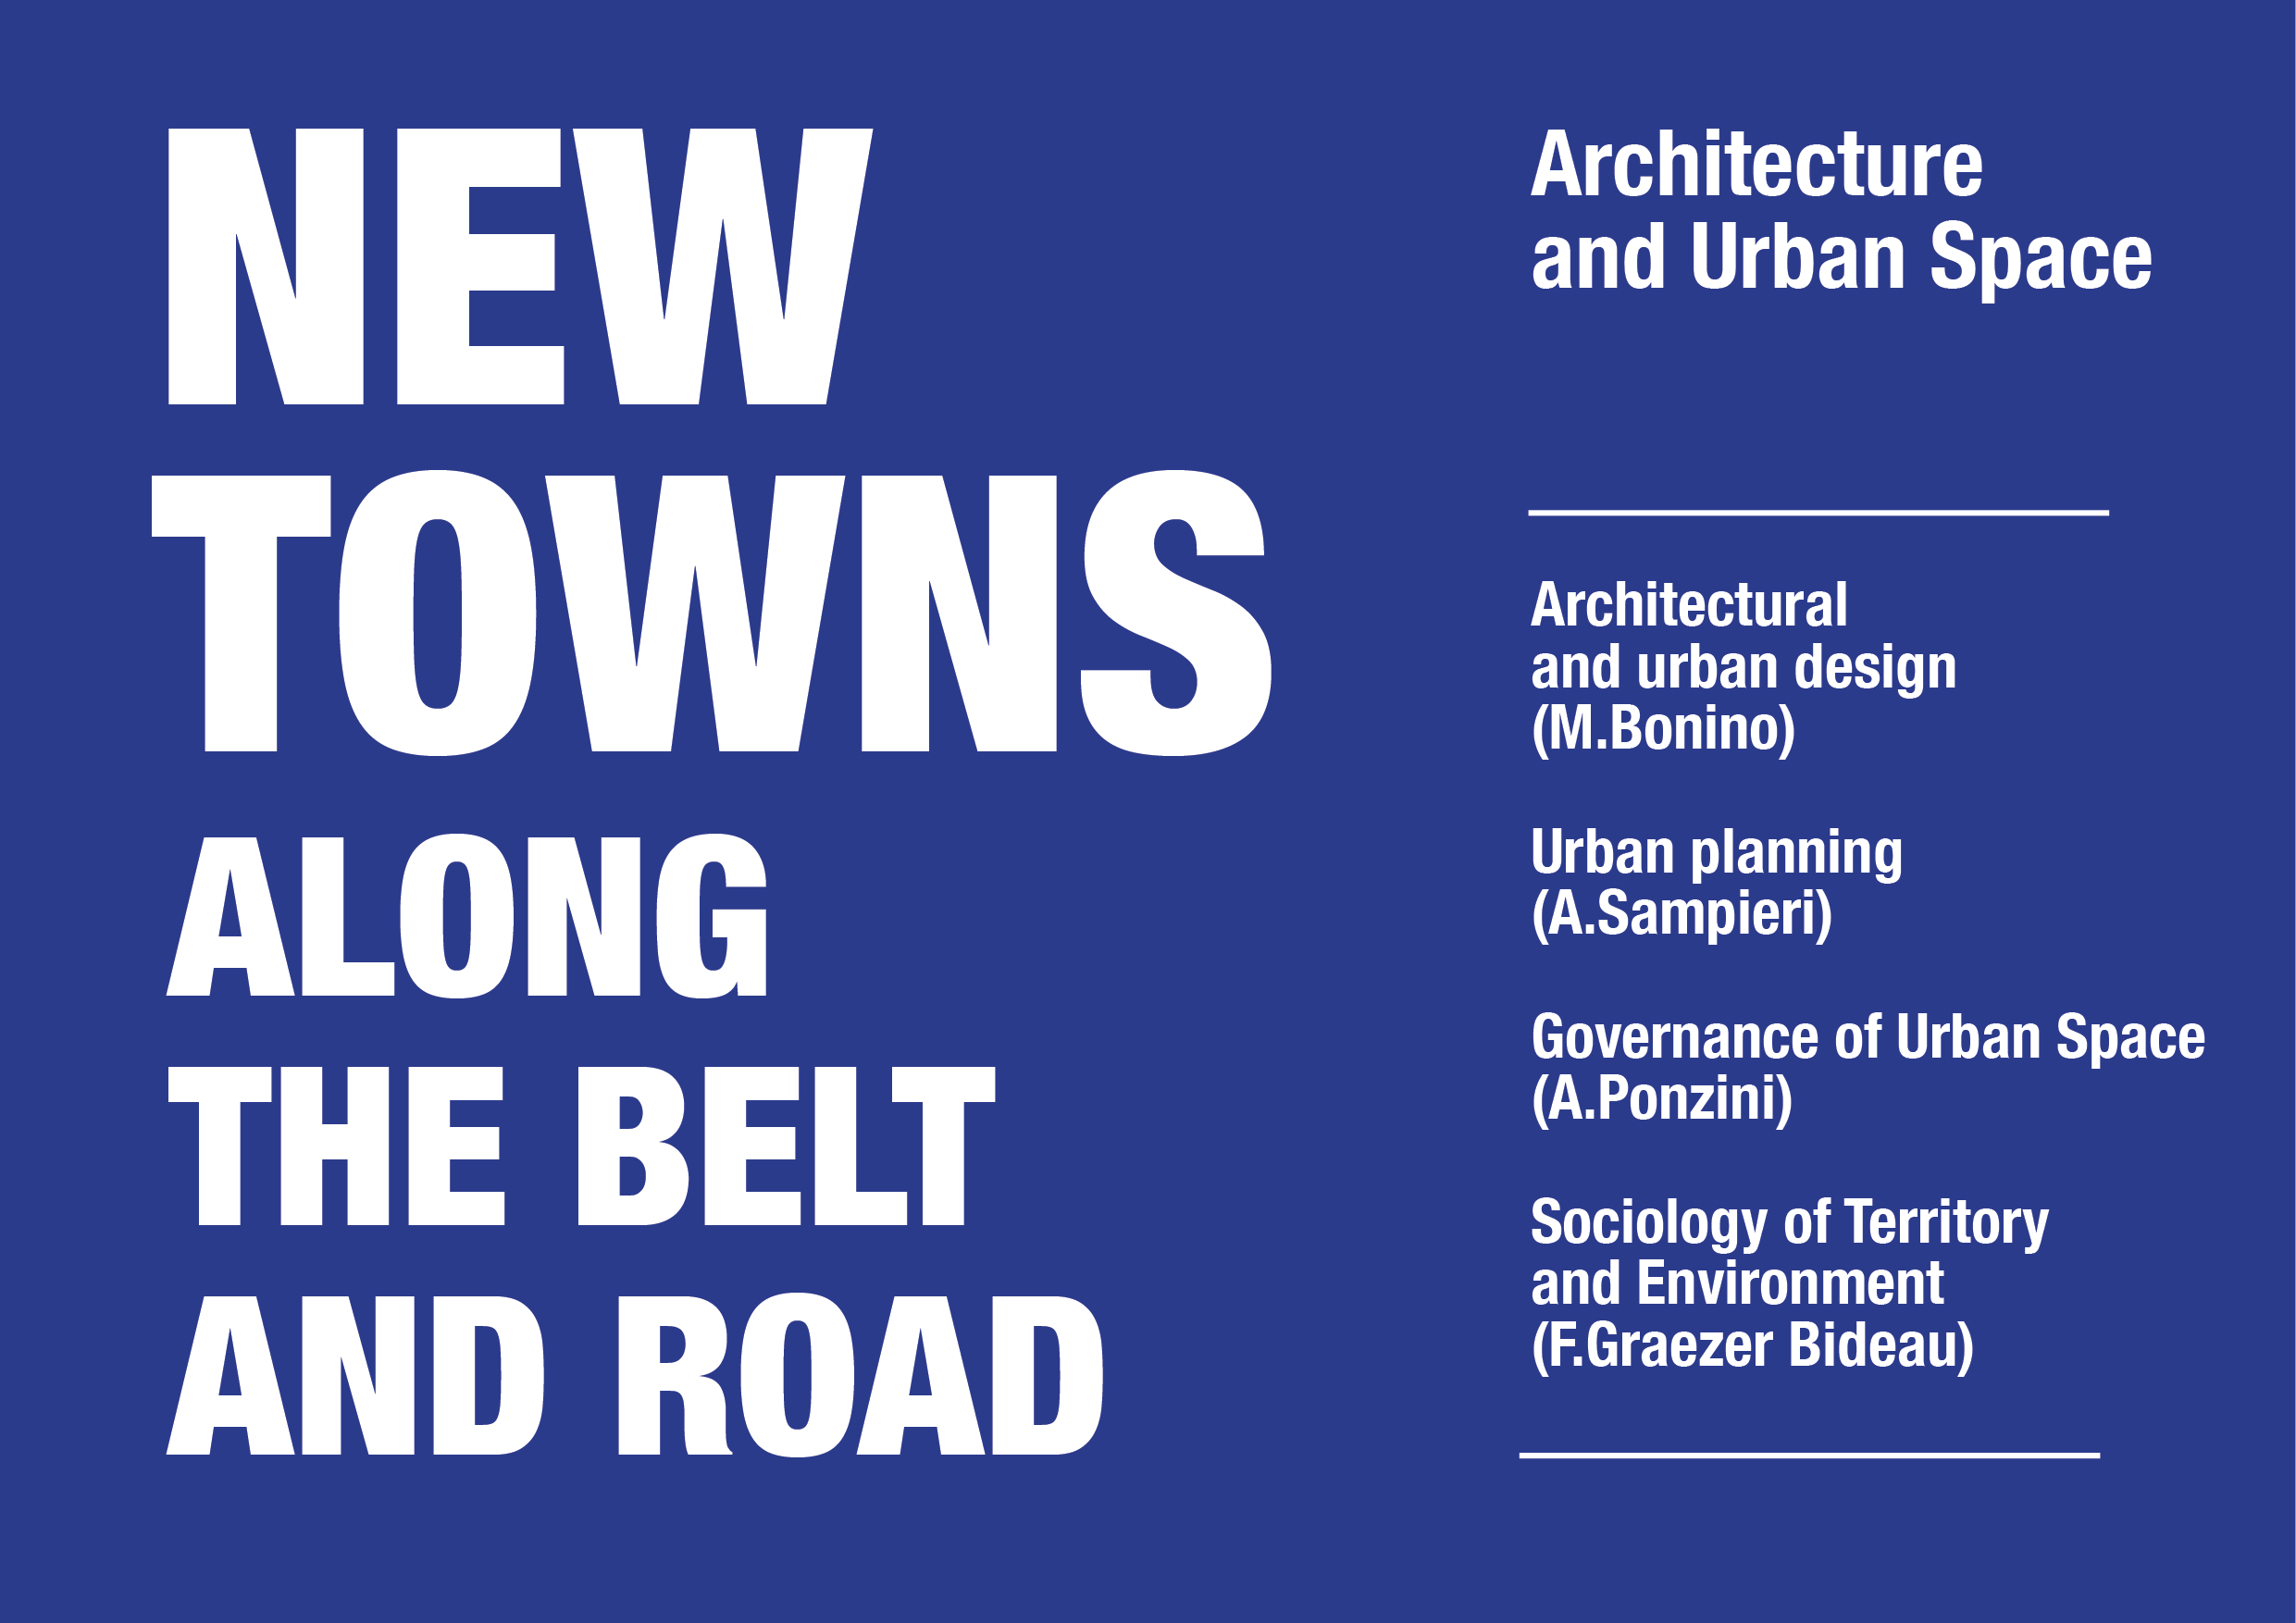 New Towns along the Belt and Road